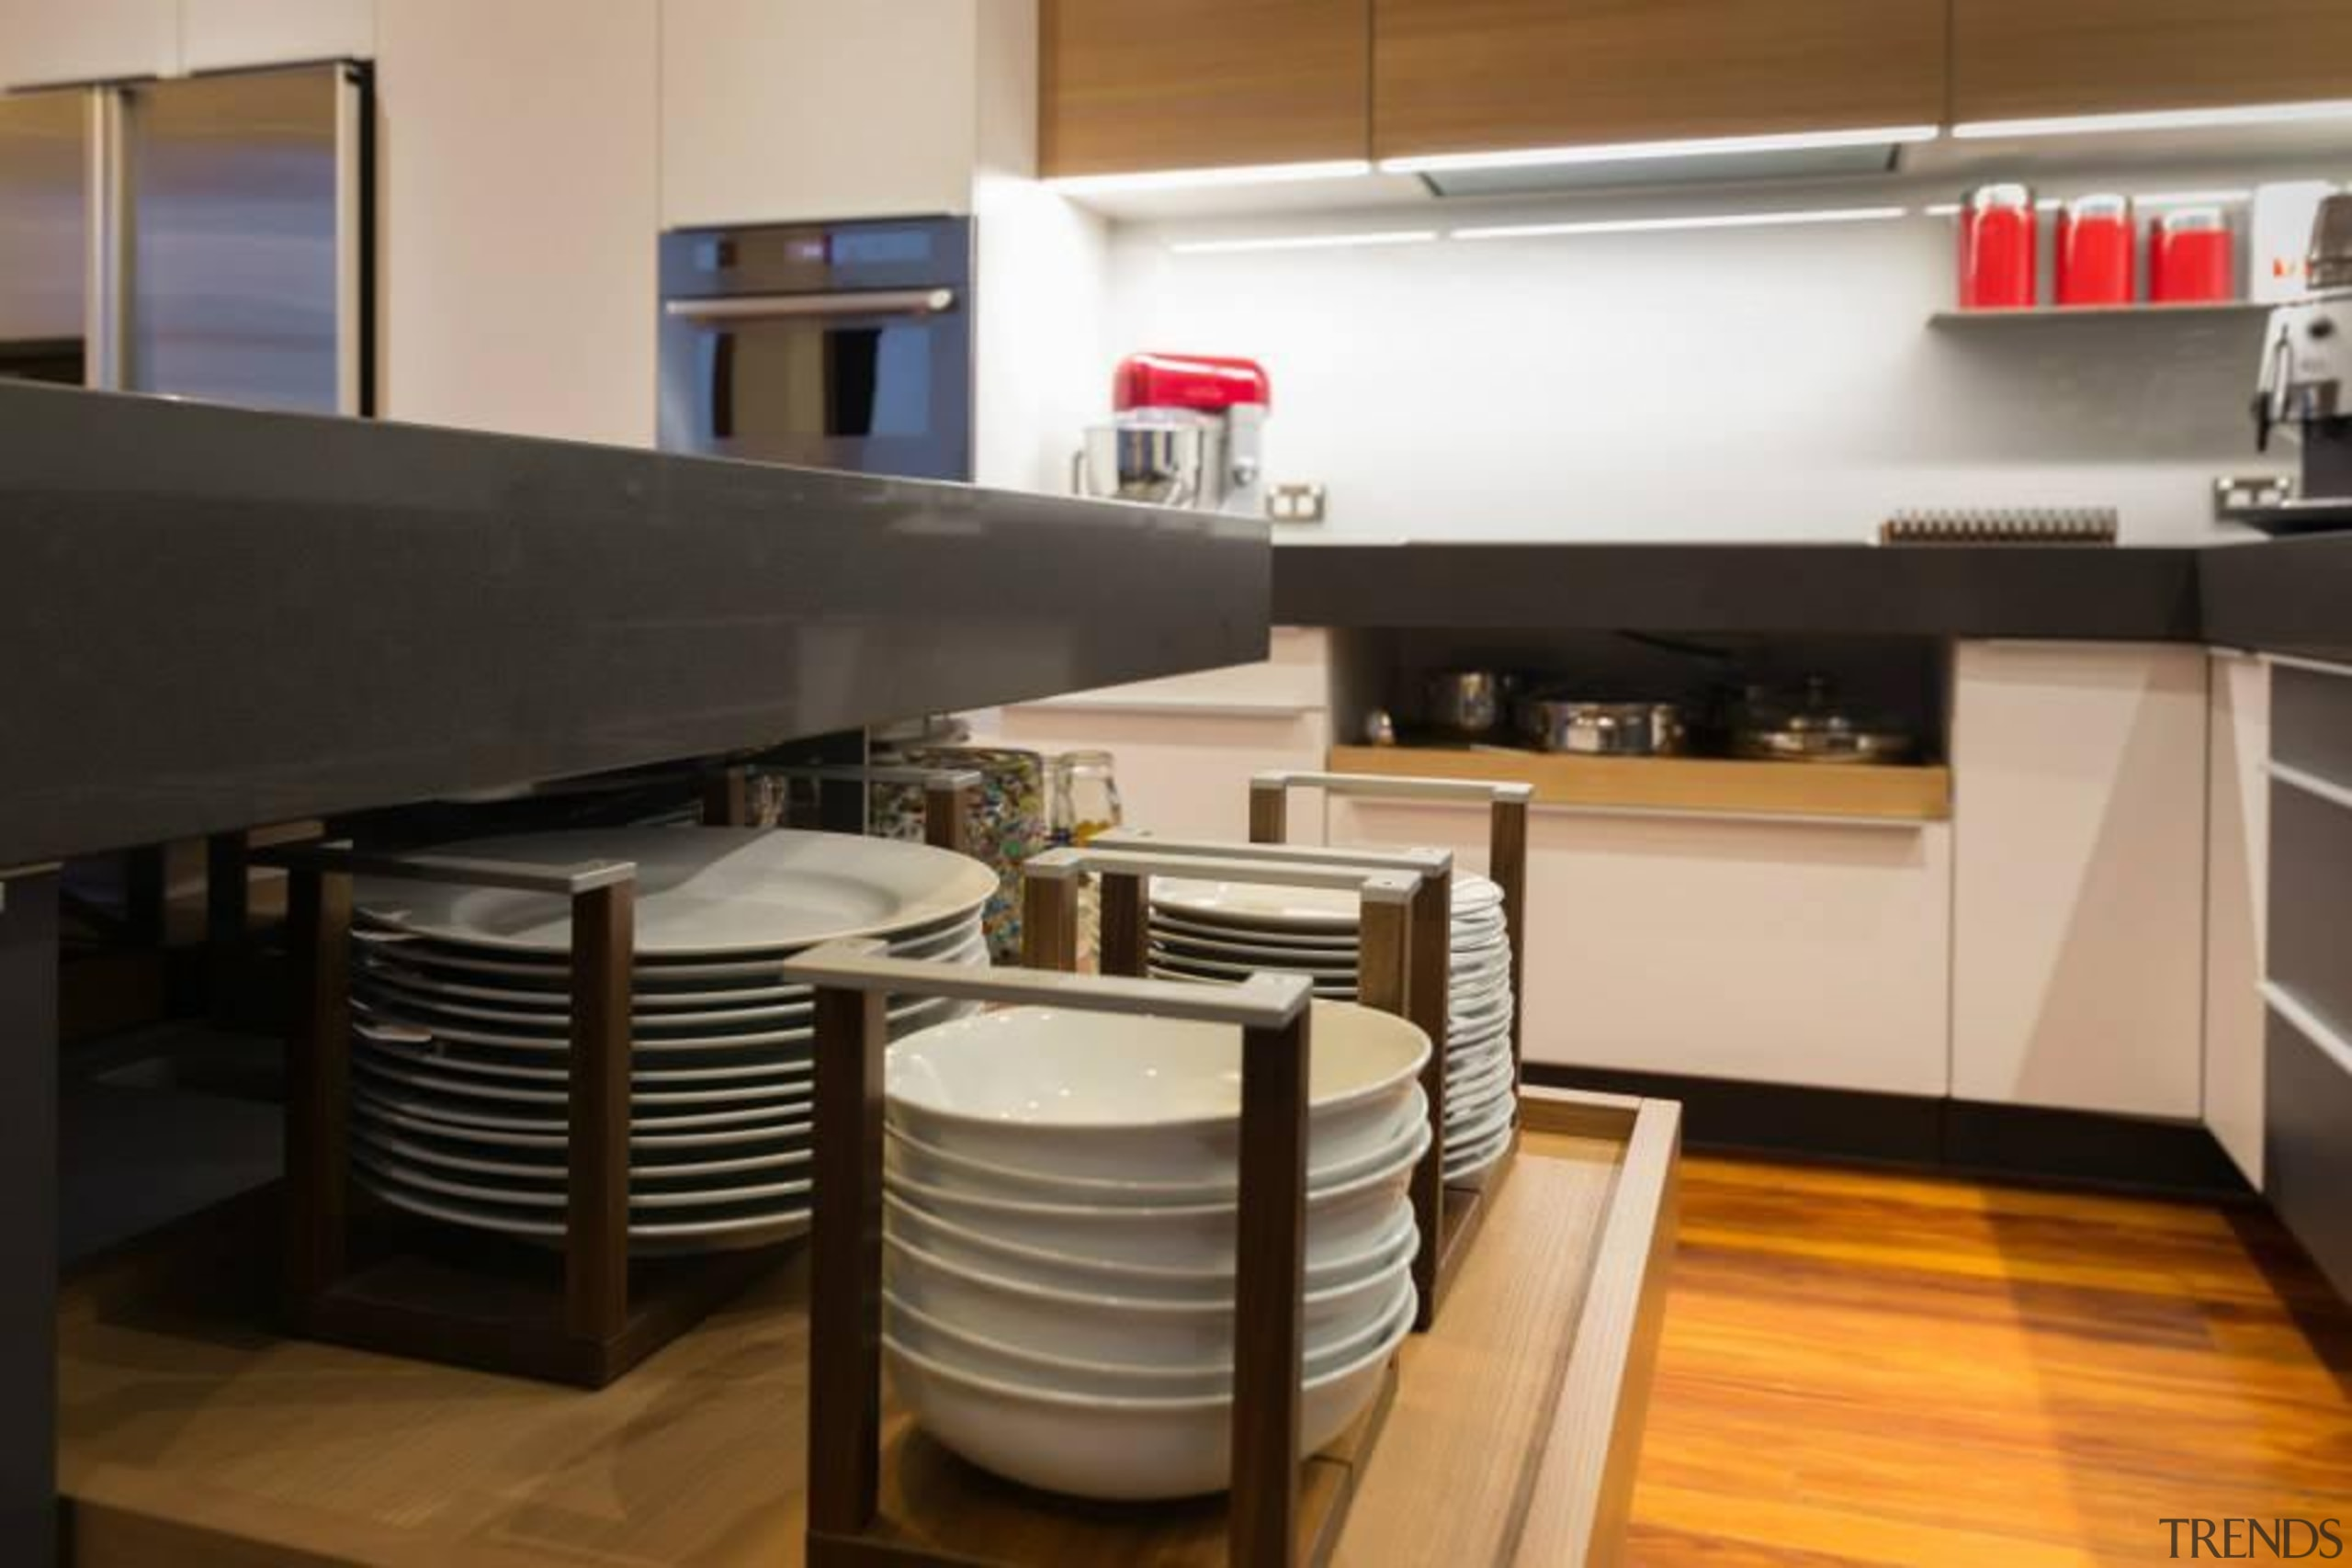 Great storage for your plates, bowls and pots.For countertop, interior design, kitchen, black, gray